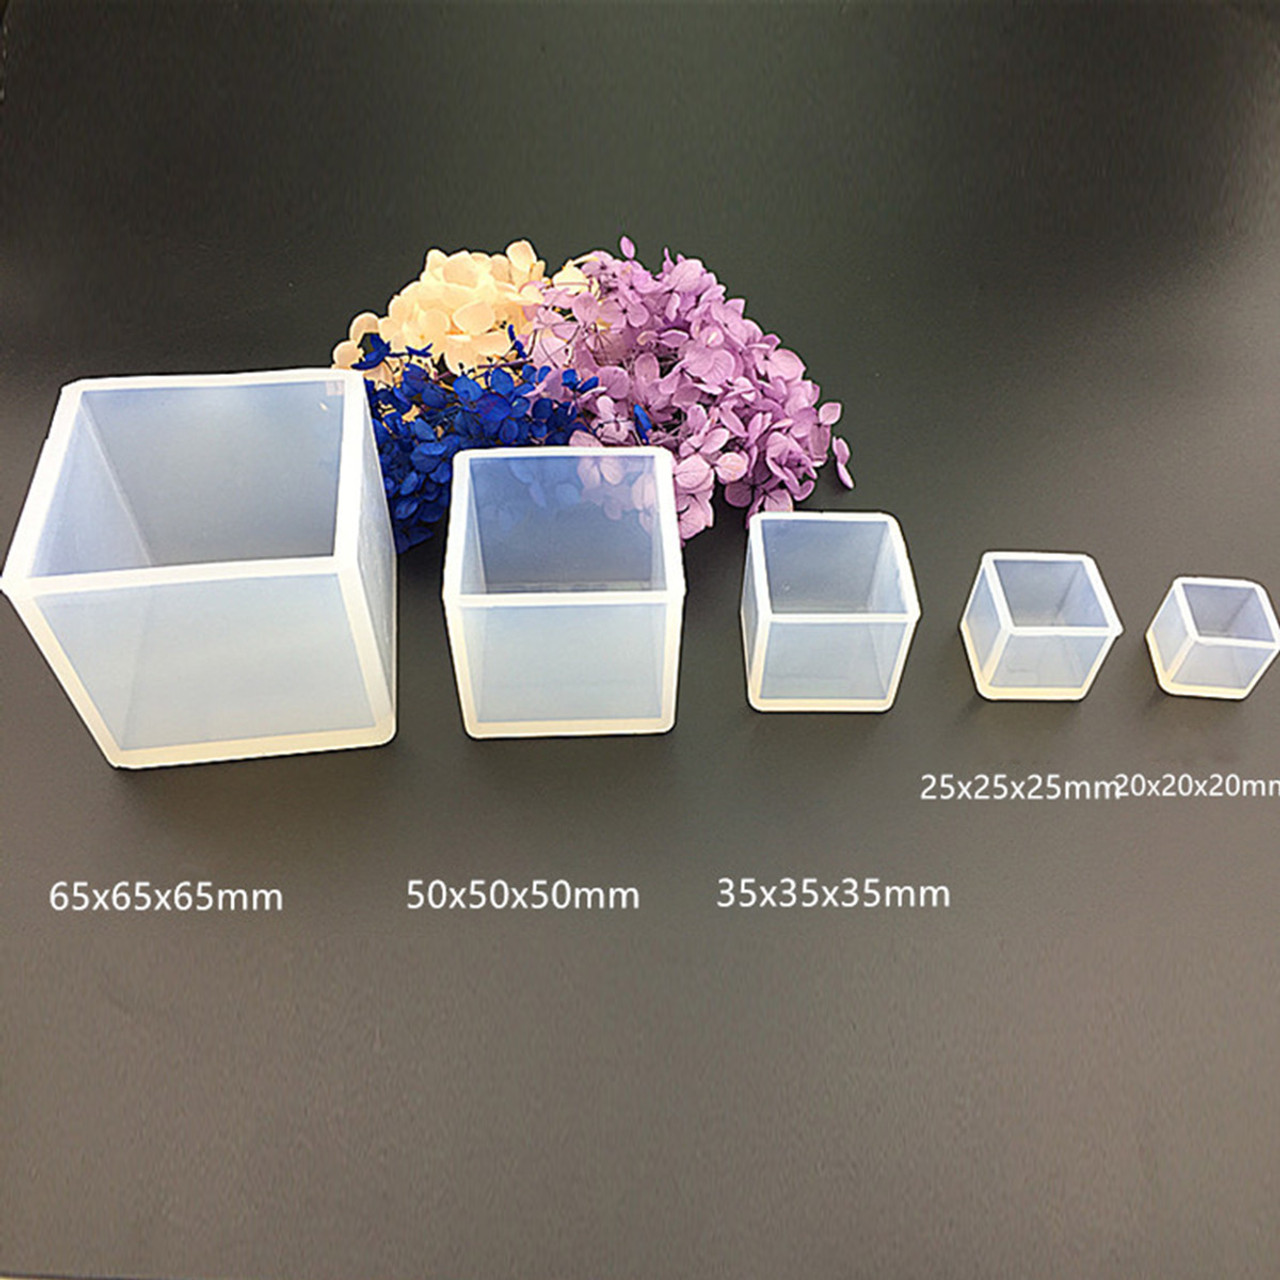 Silicone Resin Mould – Cube 35x35x35mm